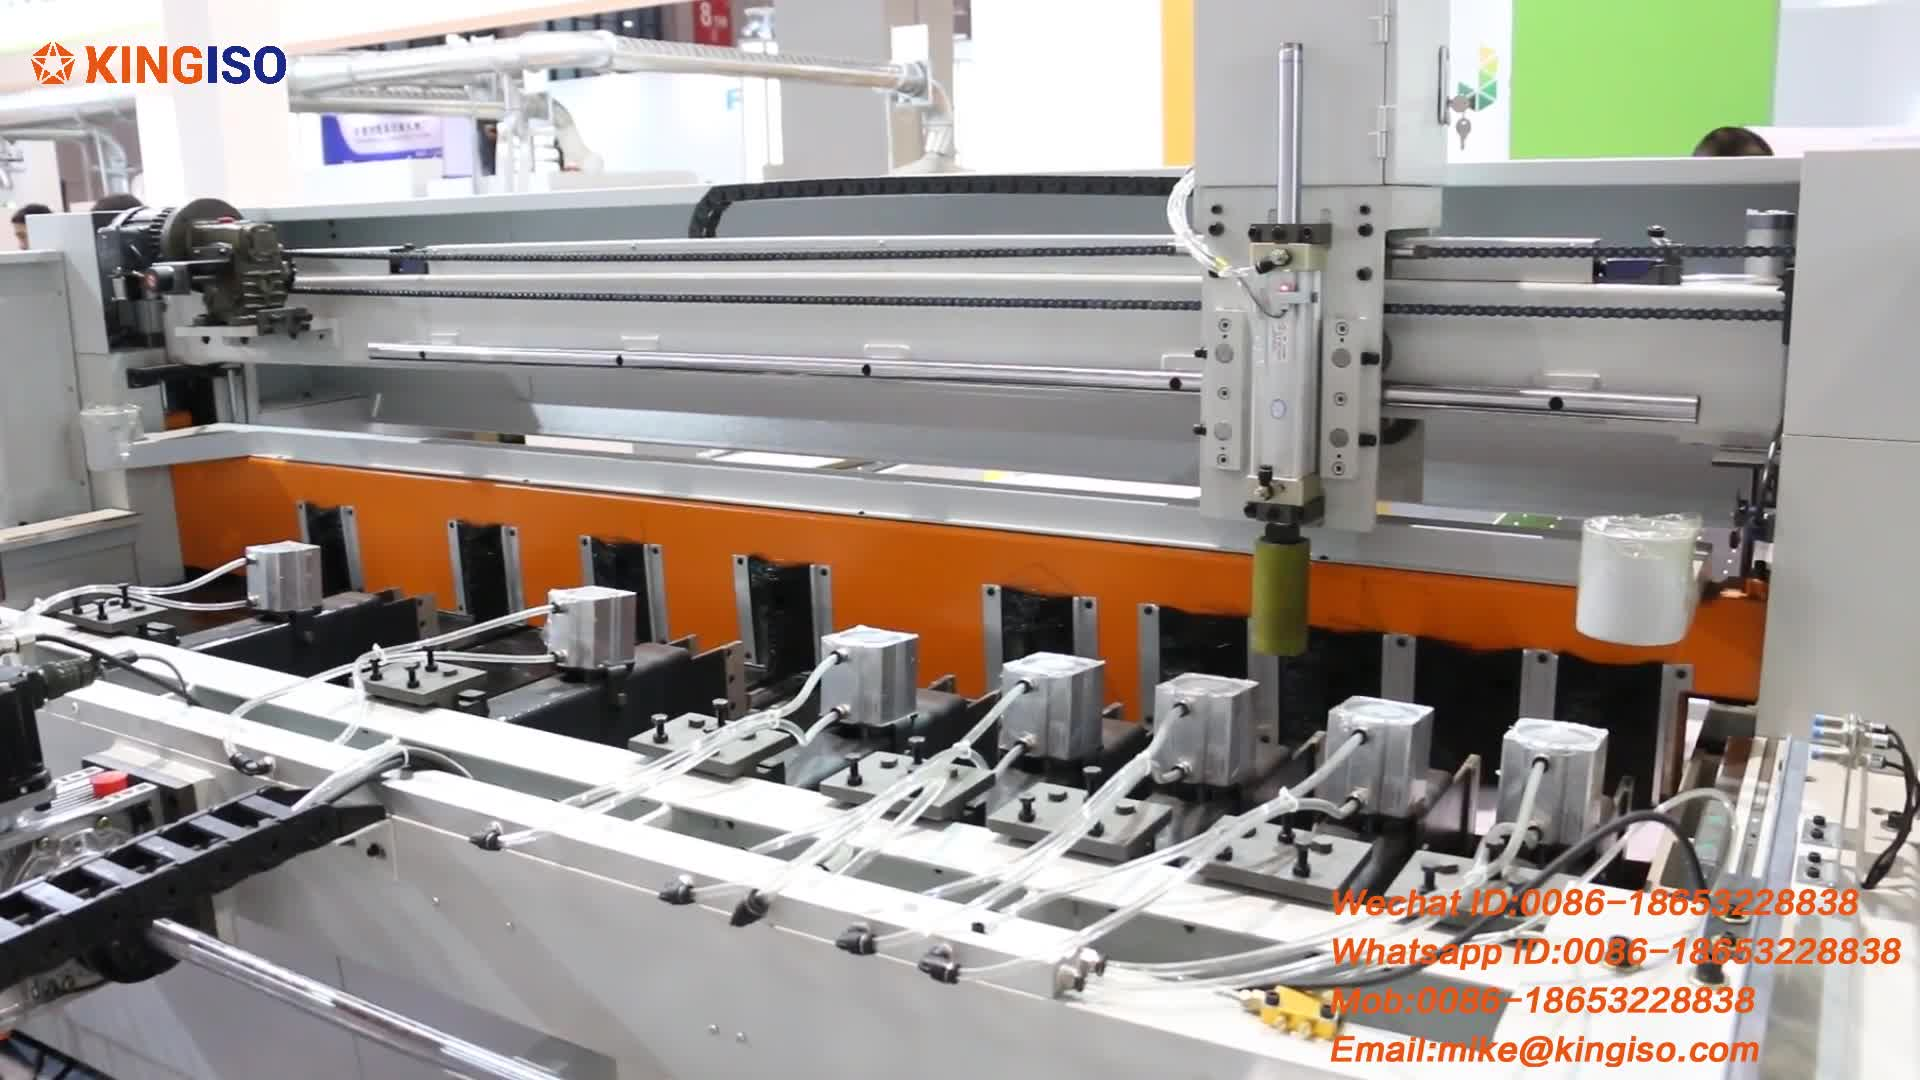 MJK1327F KINGISO Woodworking beam saw automatic computer panel saw for sale